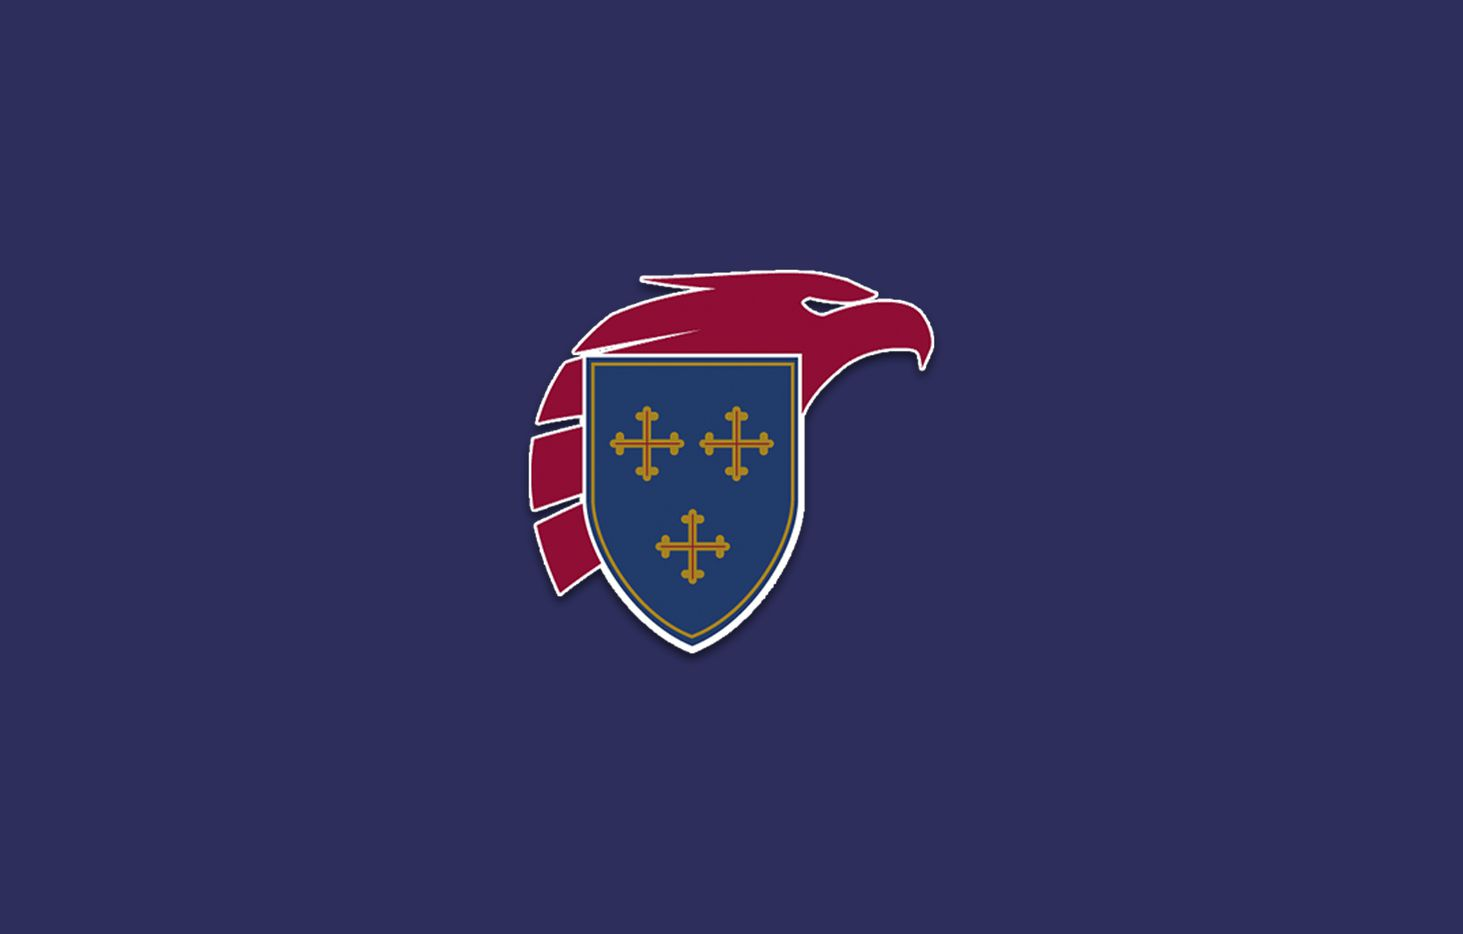 Episcopal School of Dallas logo.